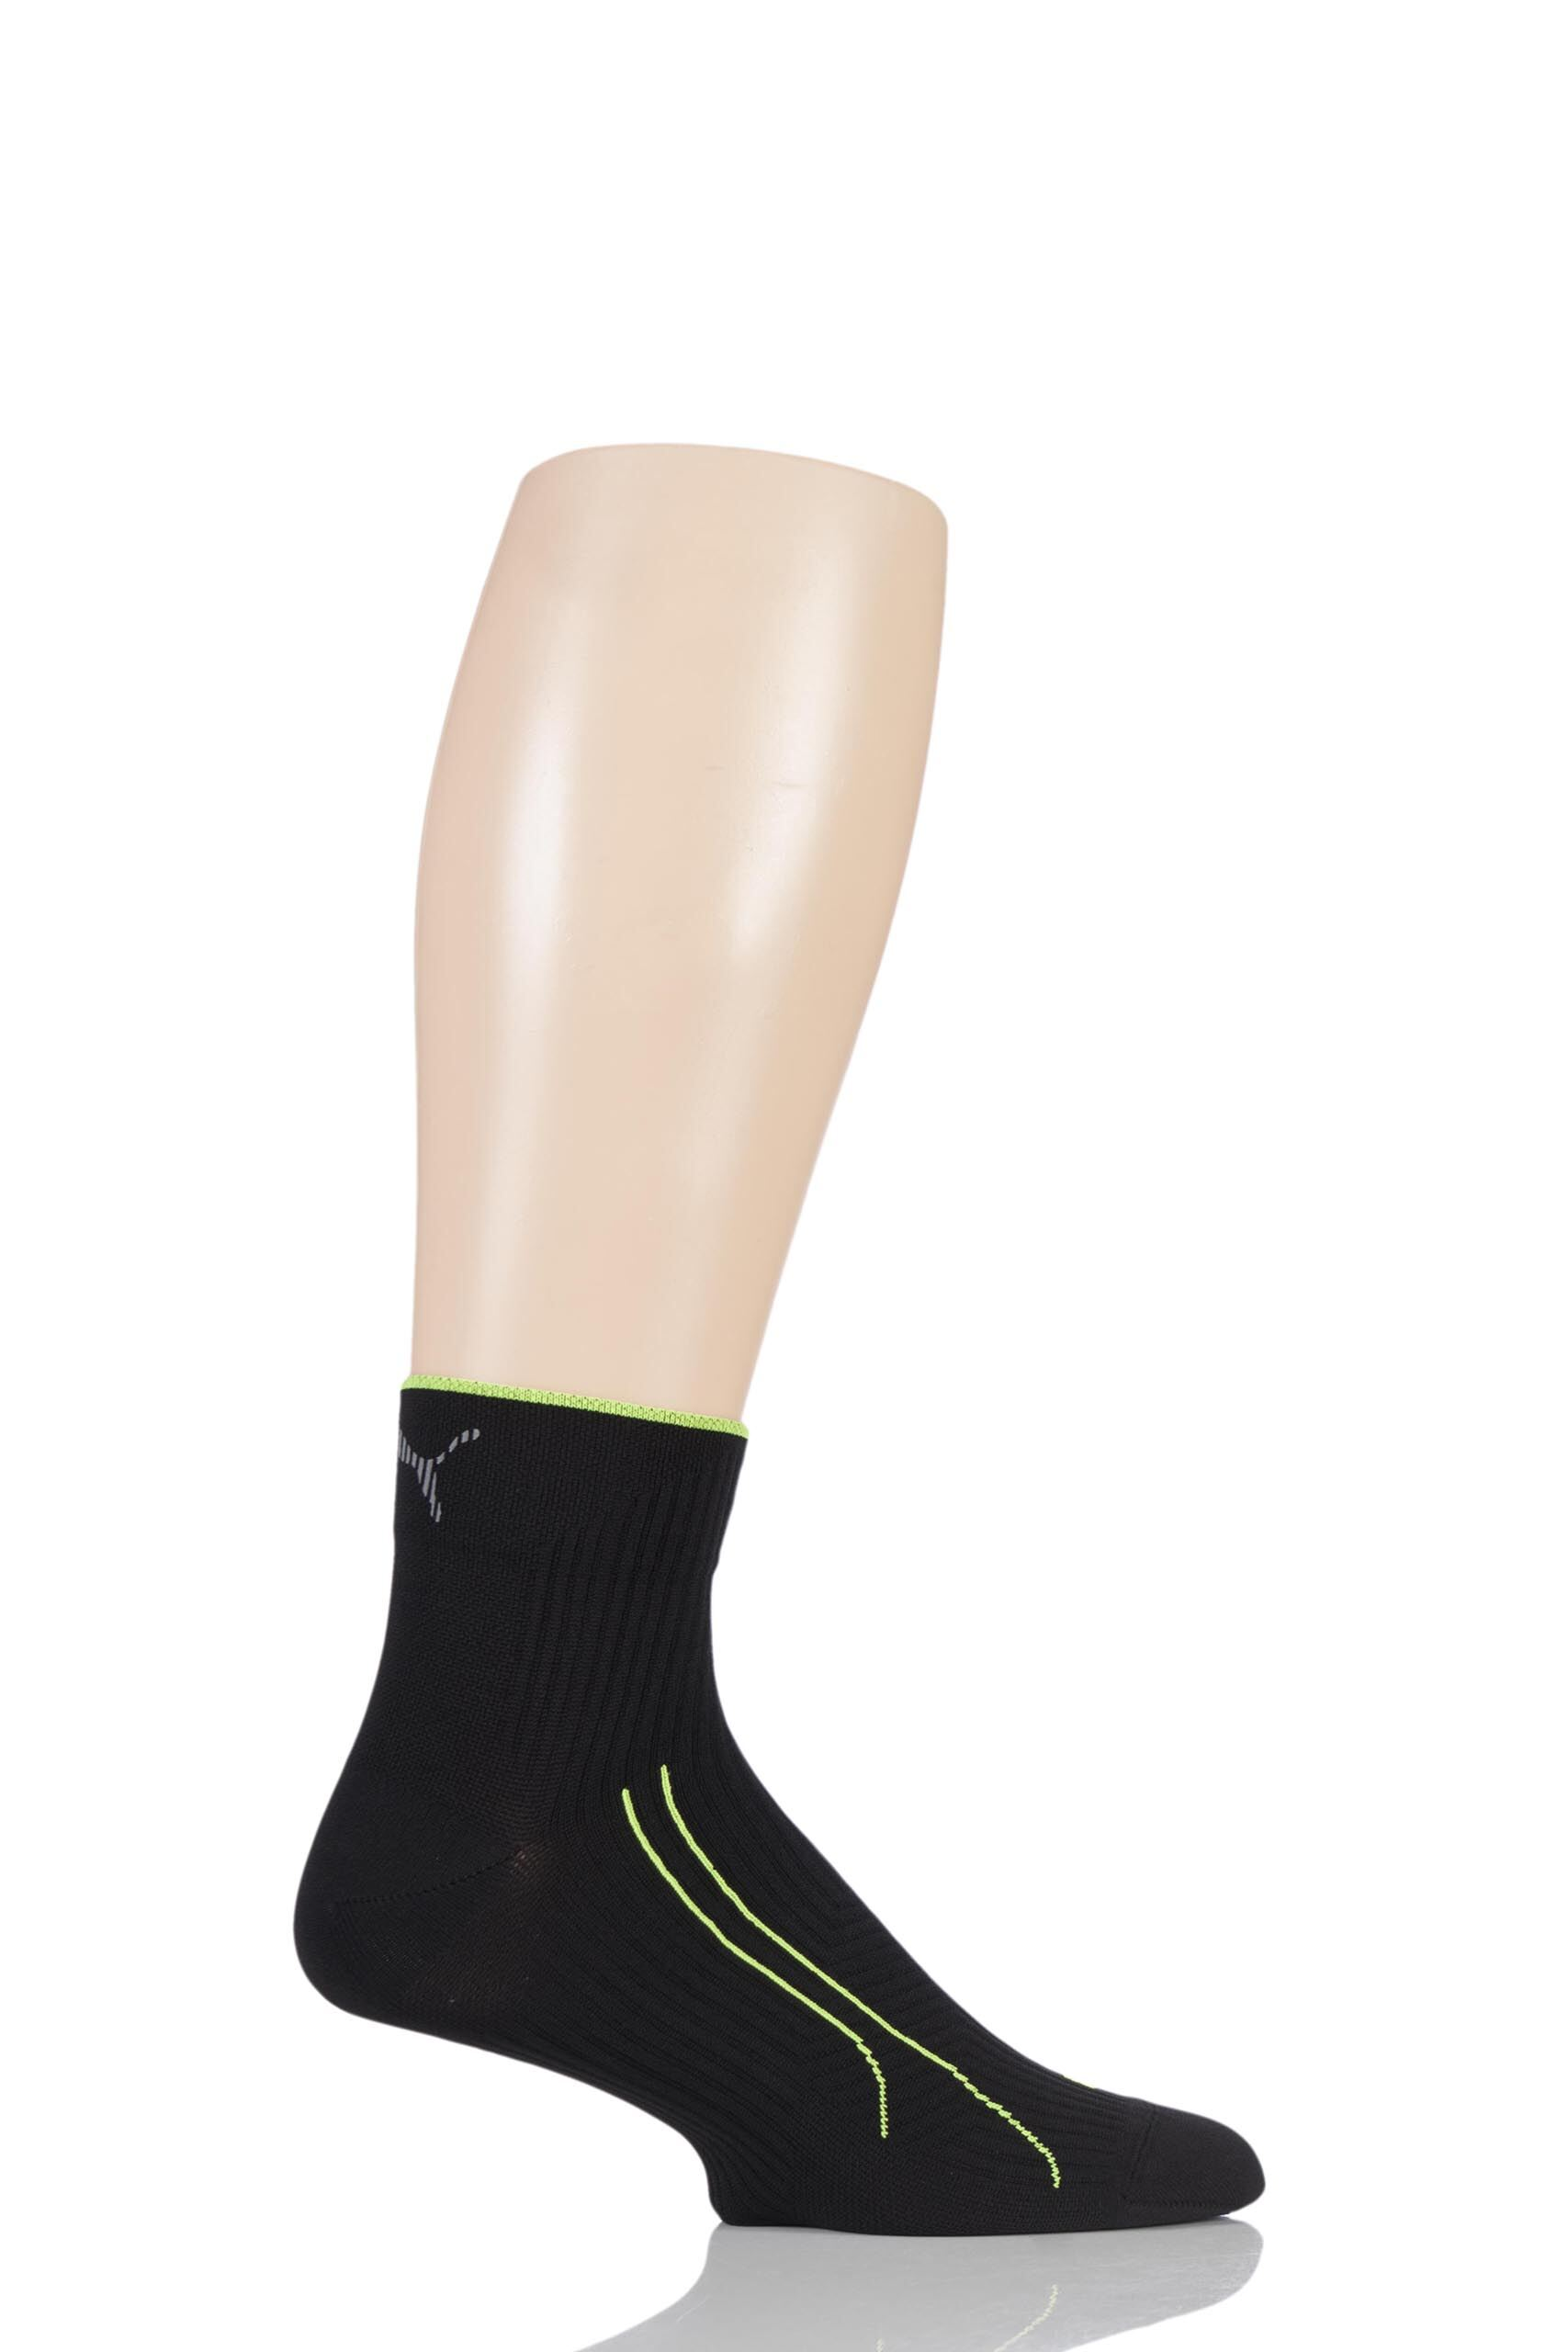 Image of 1 Pair Black Performance Running Compression Quarter Socks with Tactel Unisex 9-11 Unisex - Puma